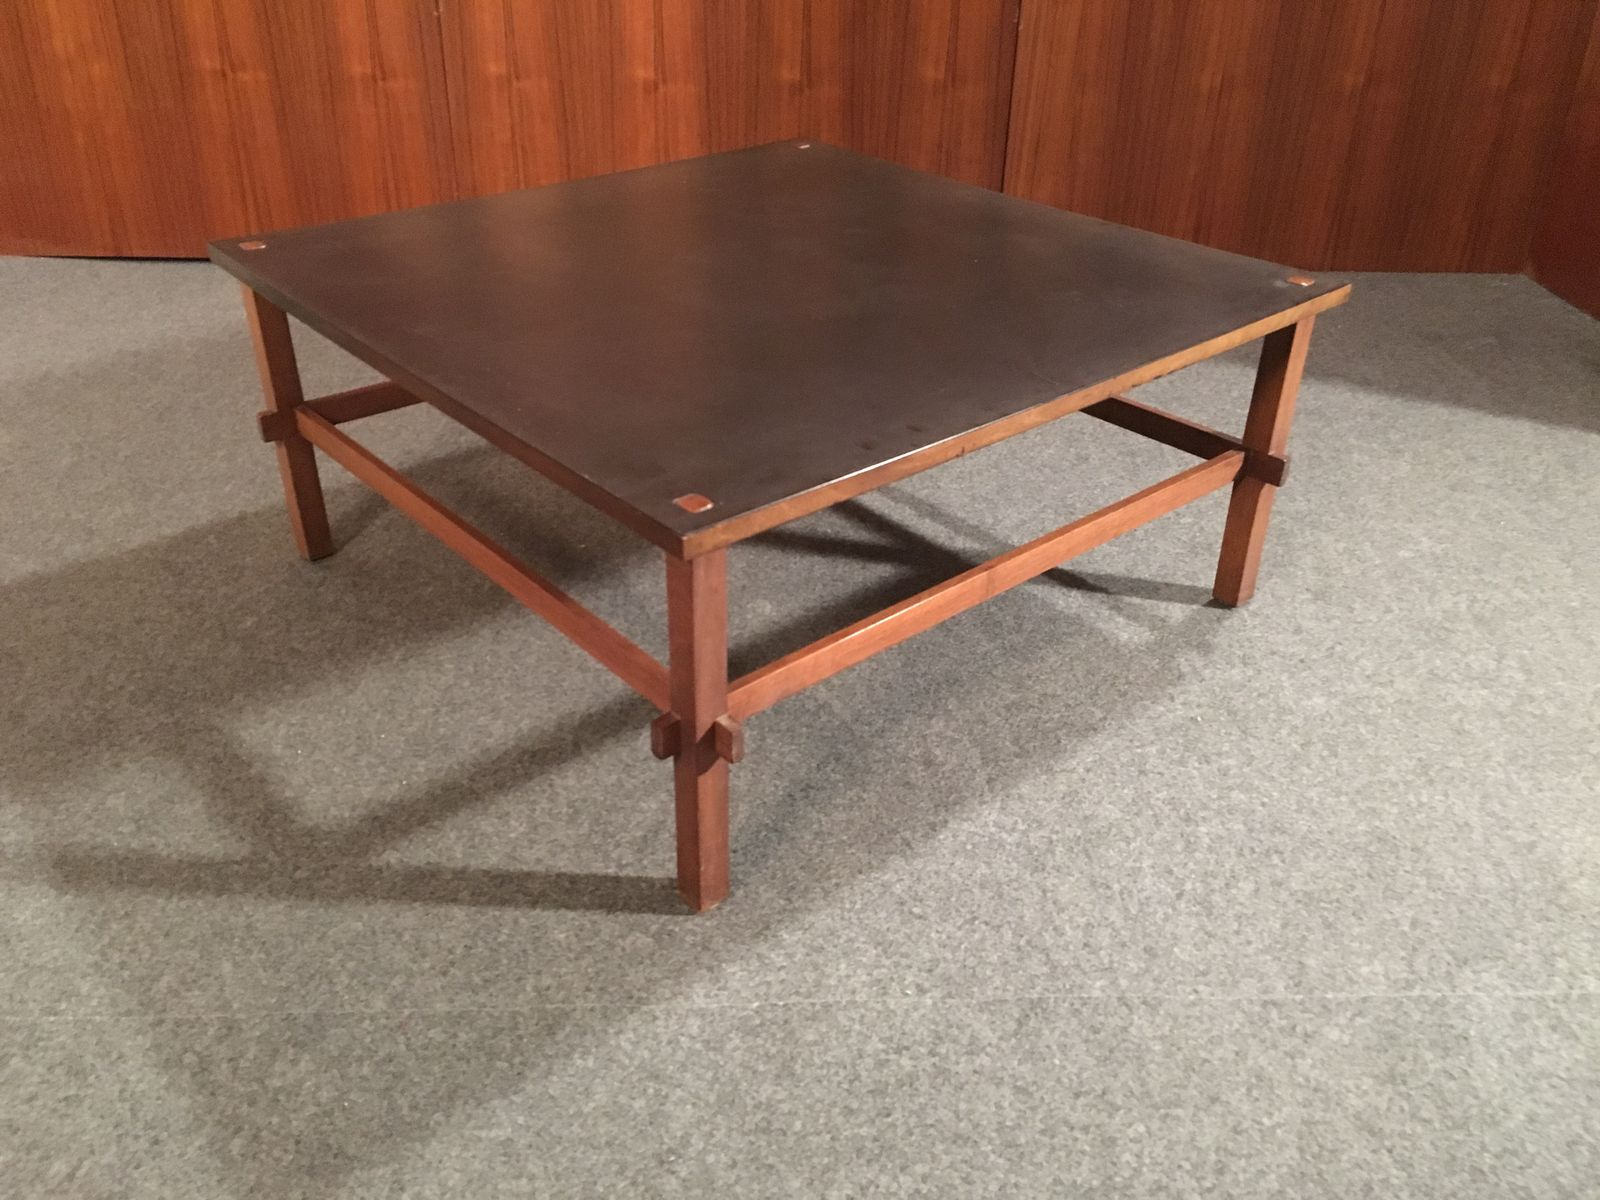 Vintage Coffee Table by Giancarlo Frattini for Cassina 1957 for